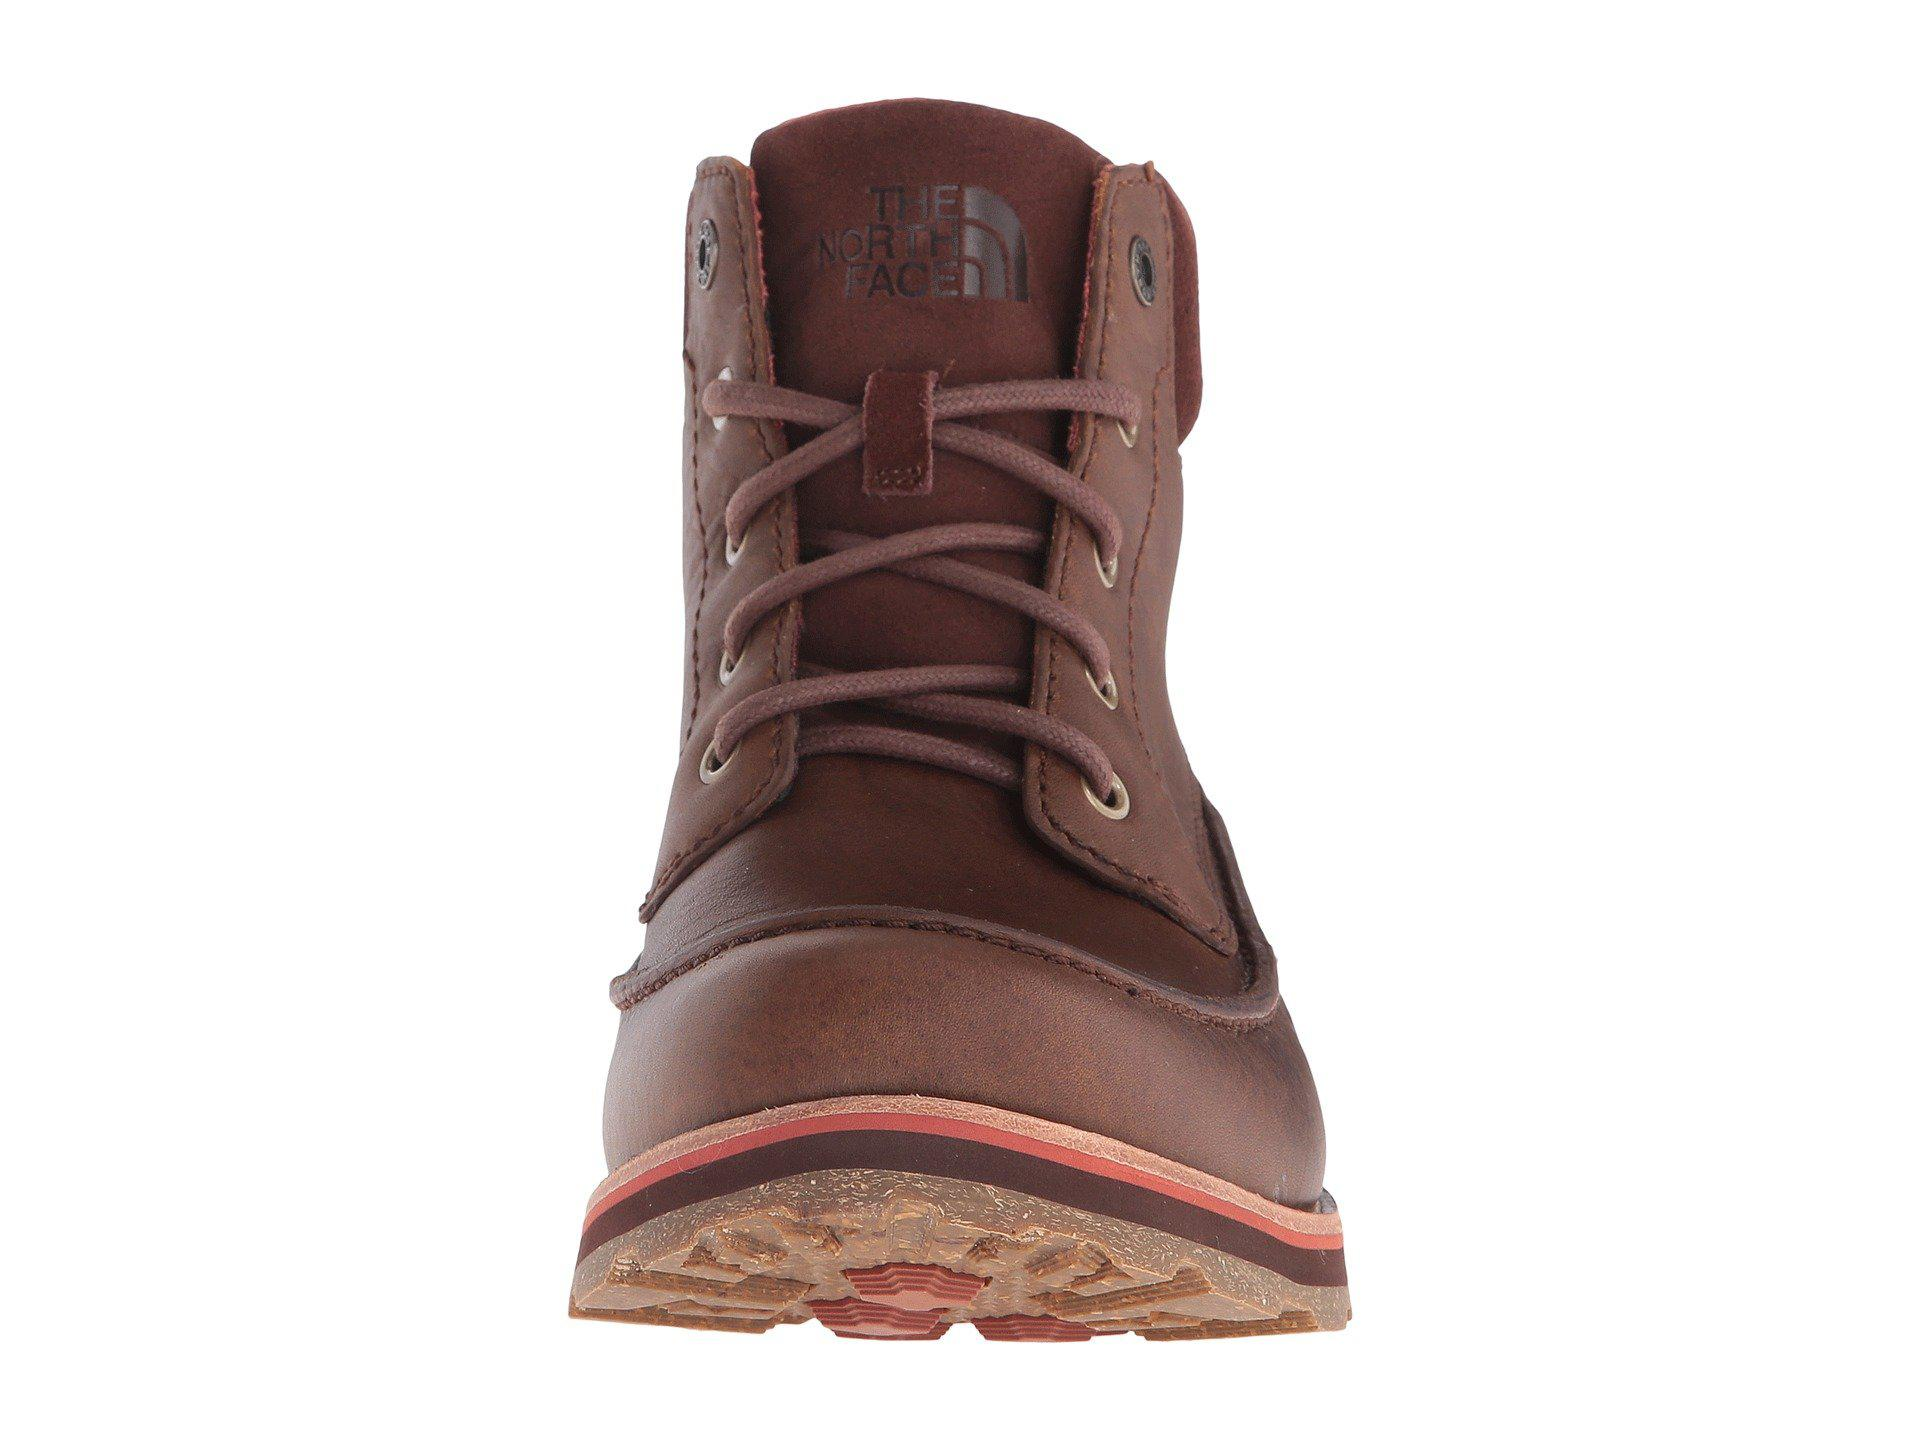 929fb5d9a95 Lyst - The North Face Bridgeton Chukka in Brown for Men